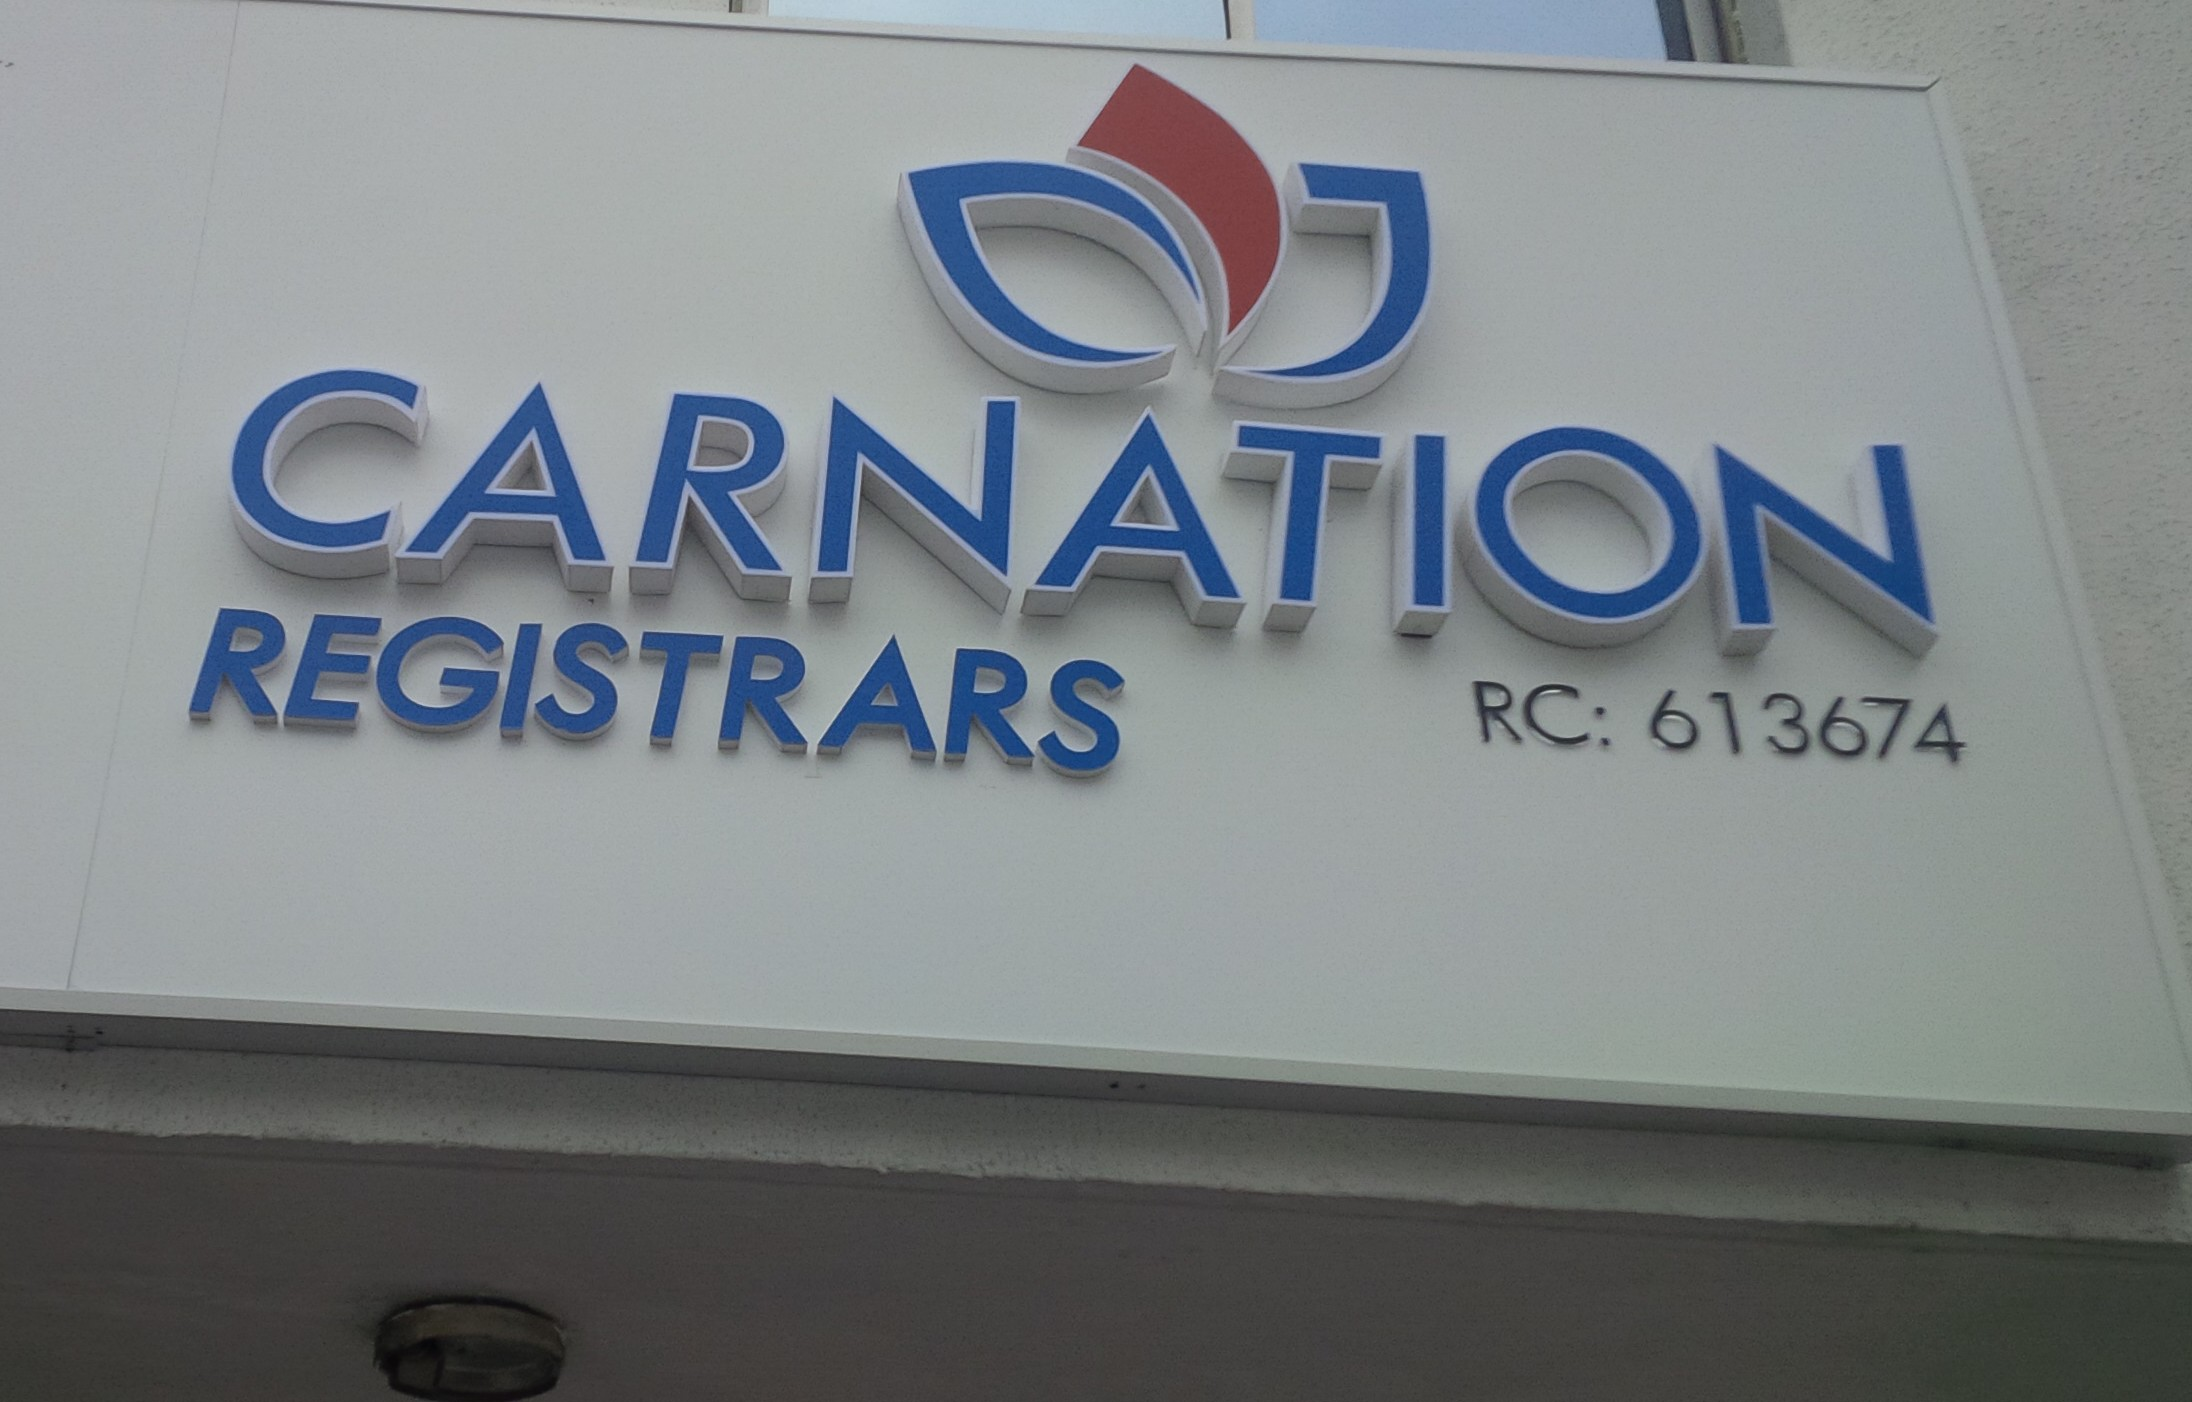 mainstreet bank registers re brands as carnation registrars for